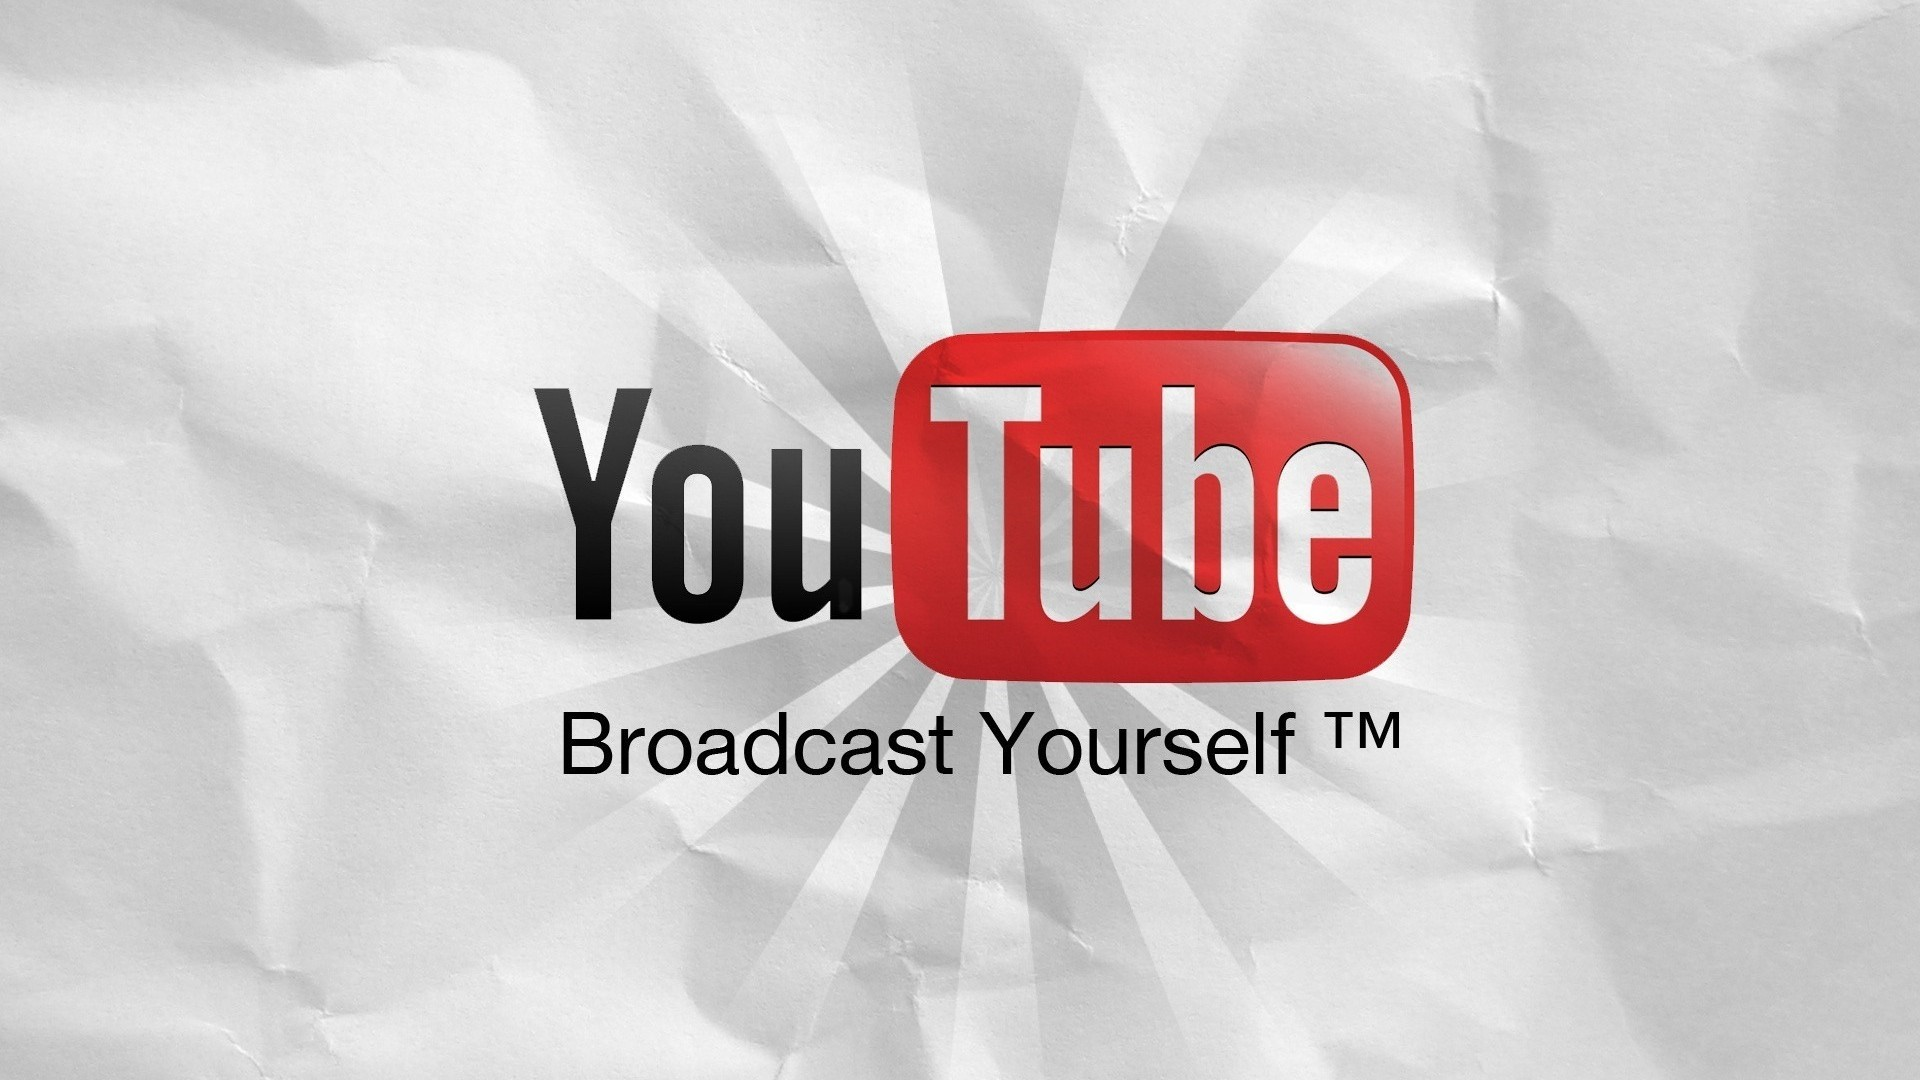 Internet Youtube Wallpaper 1920x1080 Internet Youtube Logos Videos 1920x1080